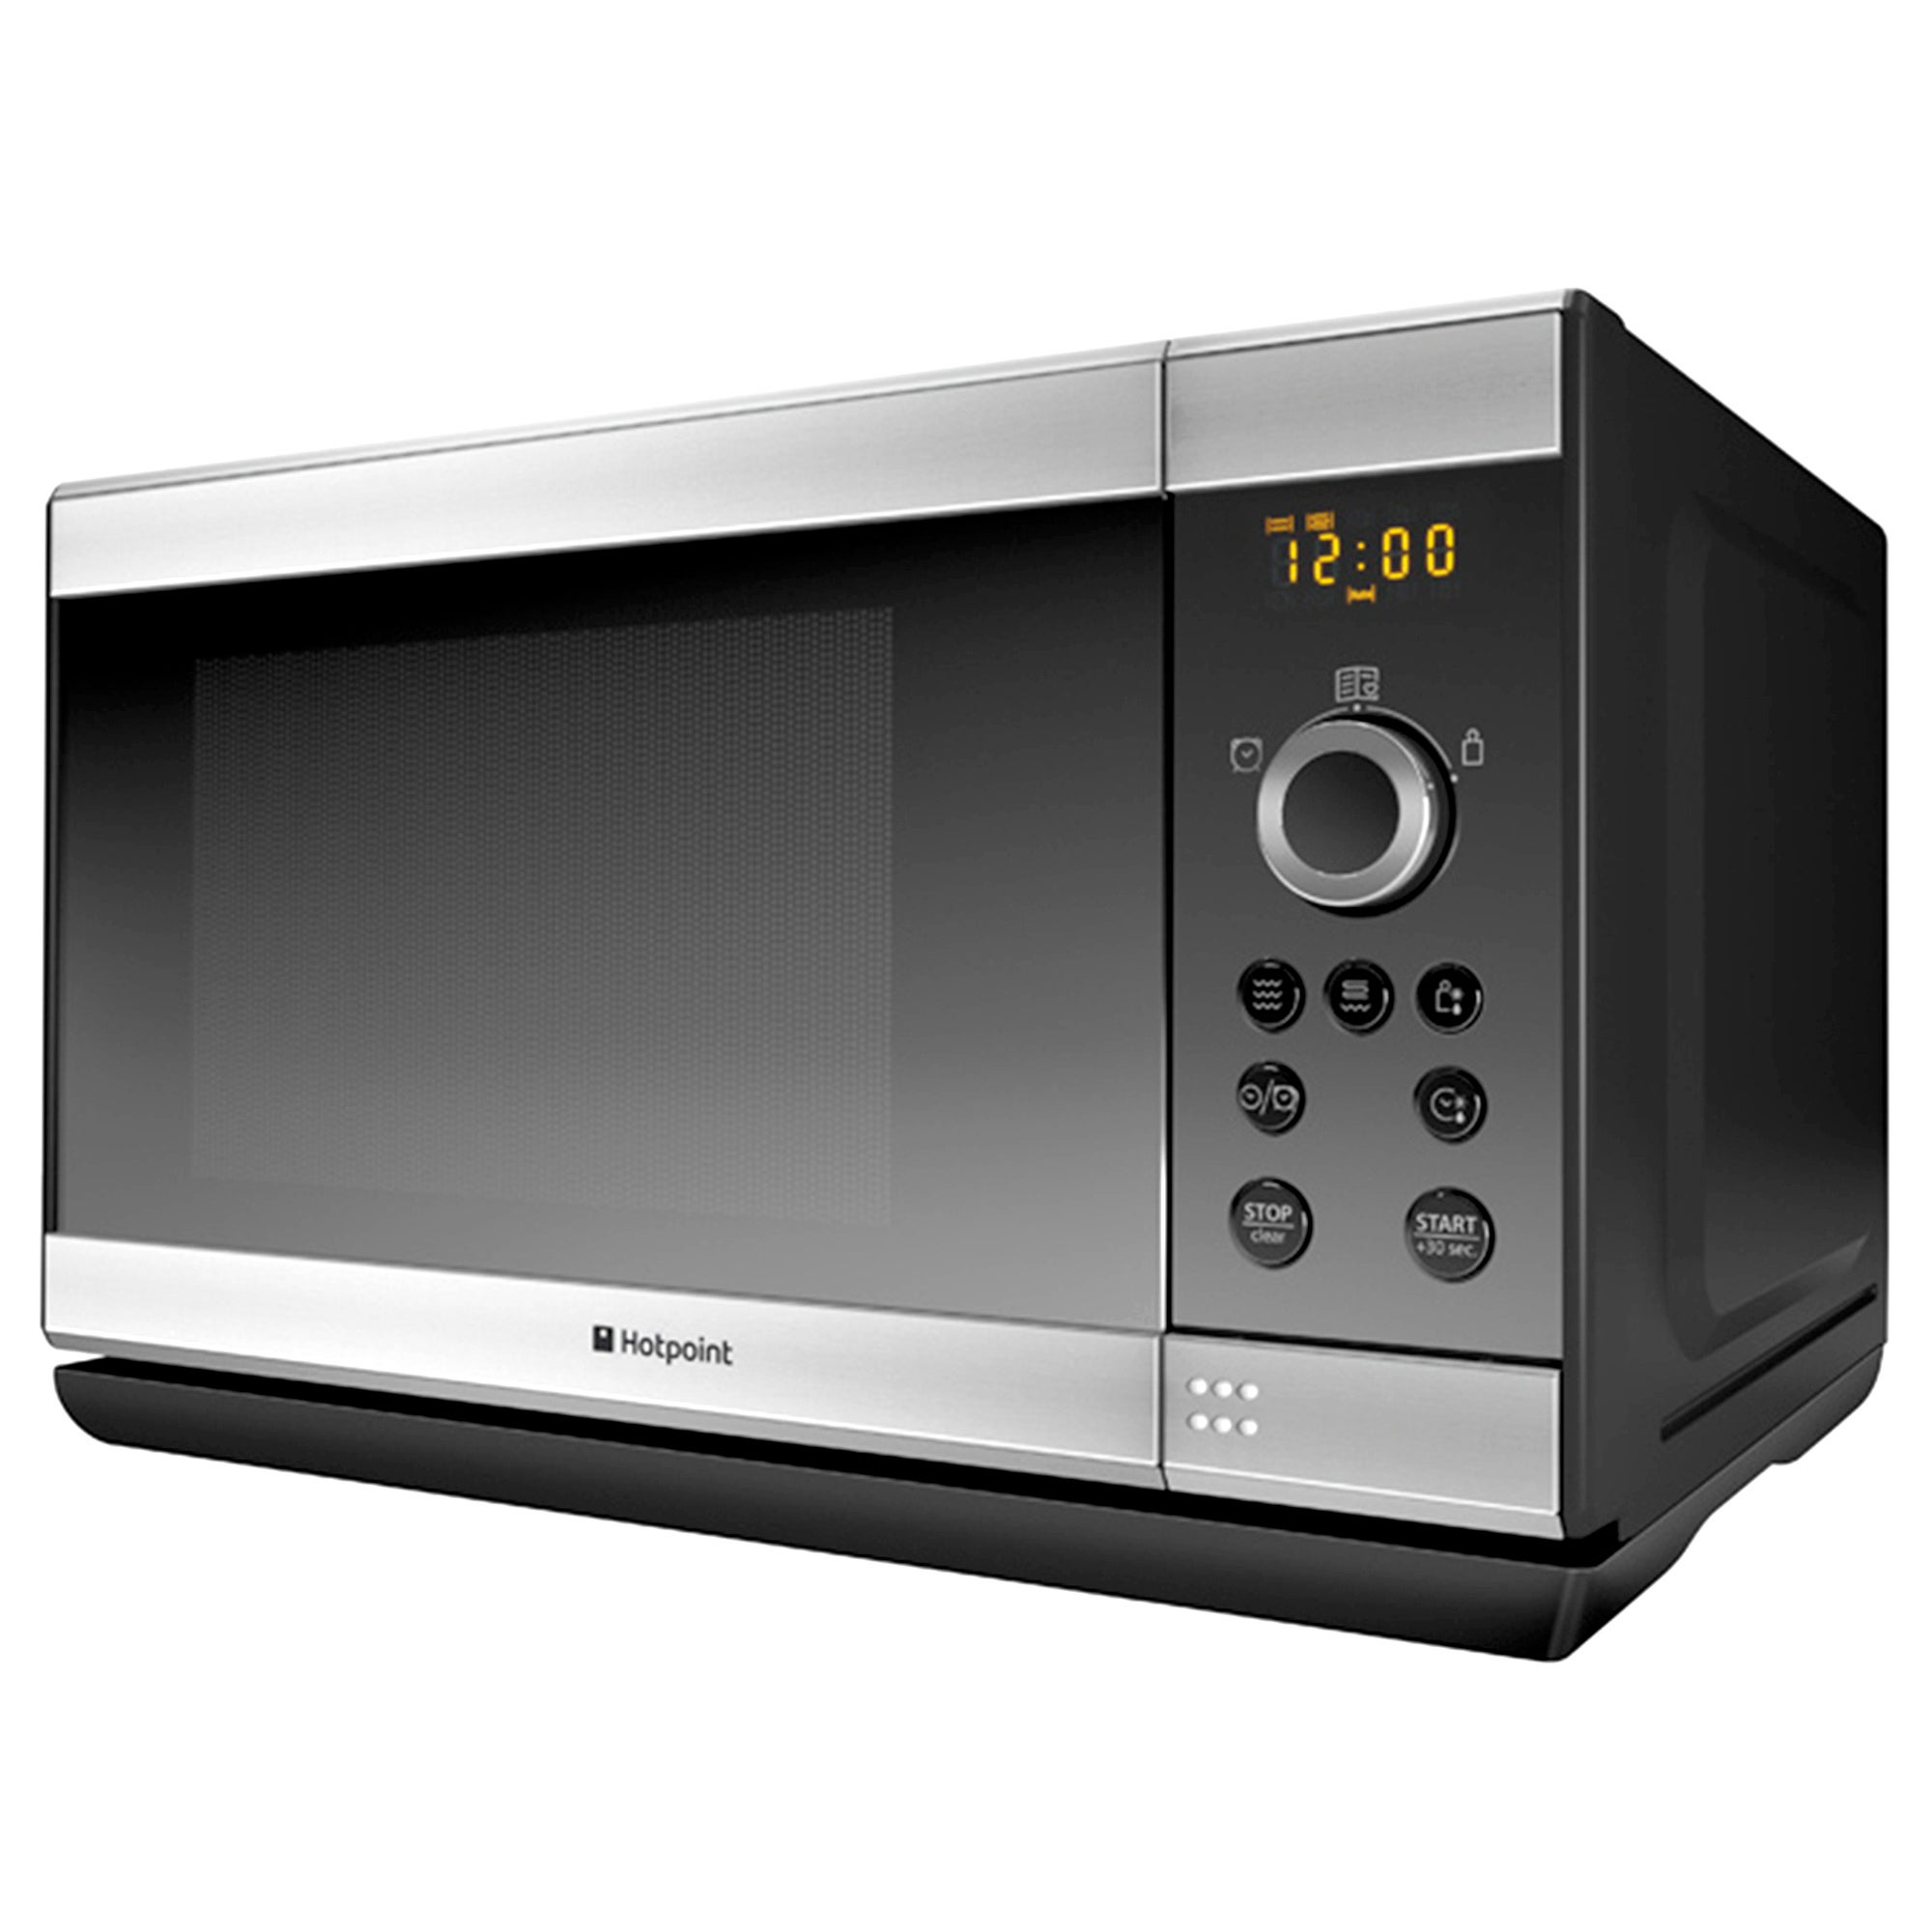 Hotpoint MWH2322X 23L 800w Stainless Steel Silver Grill Microwave